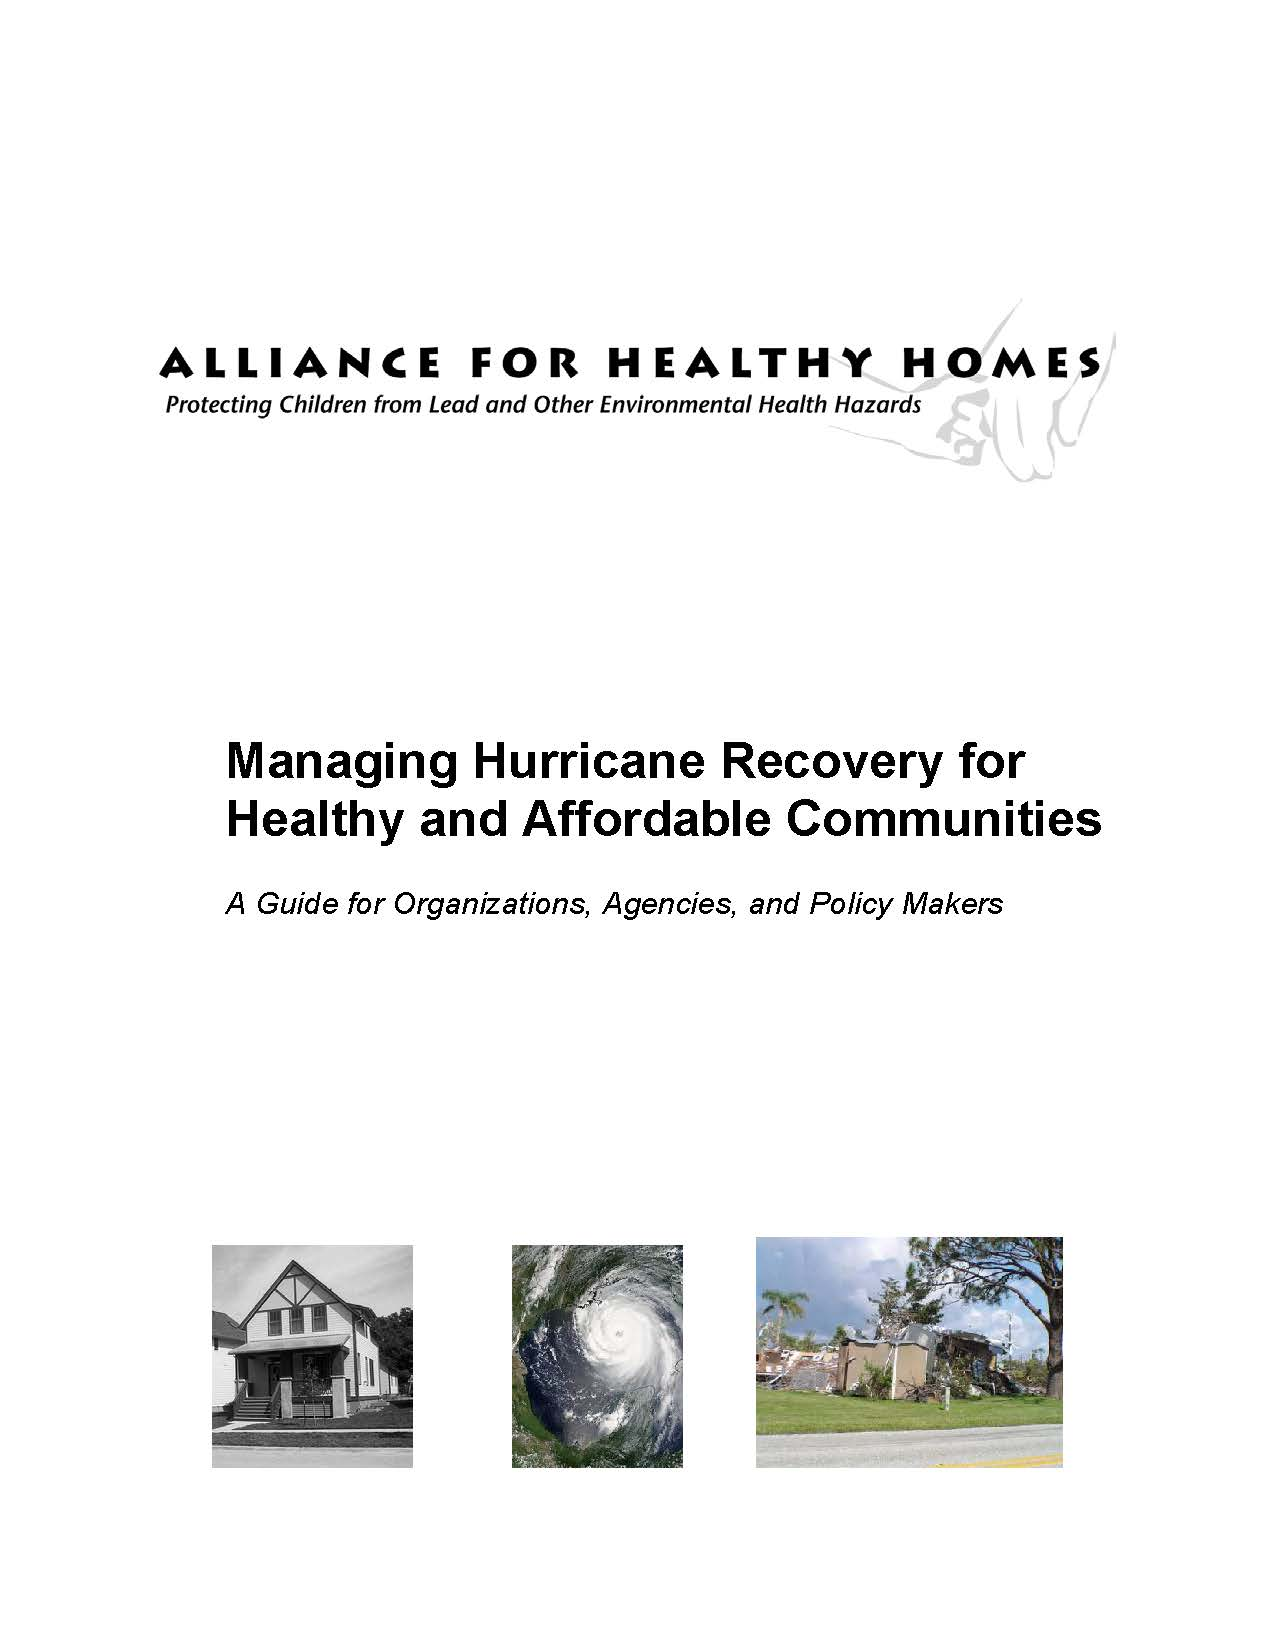 Managing Hurricane Recovery for Healthy and Affordable Communities